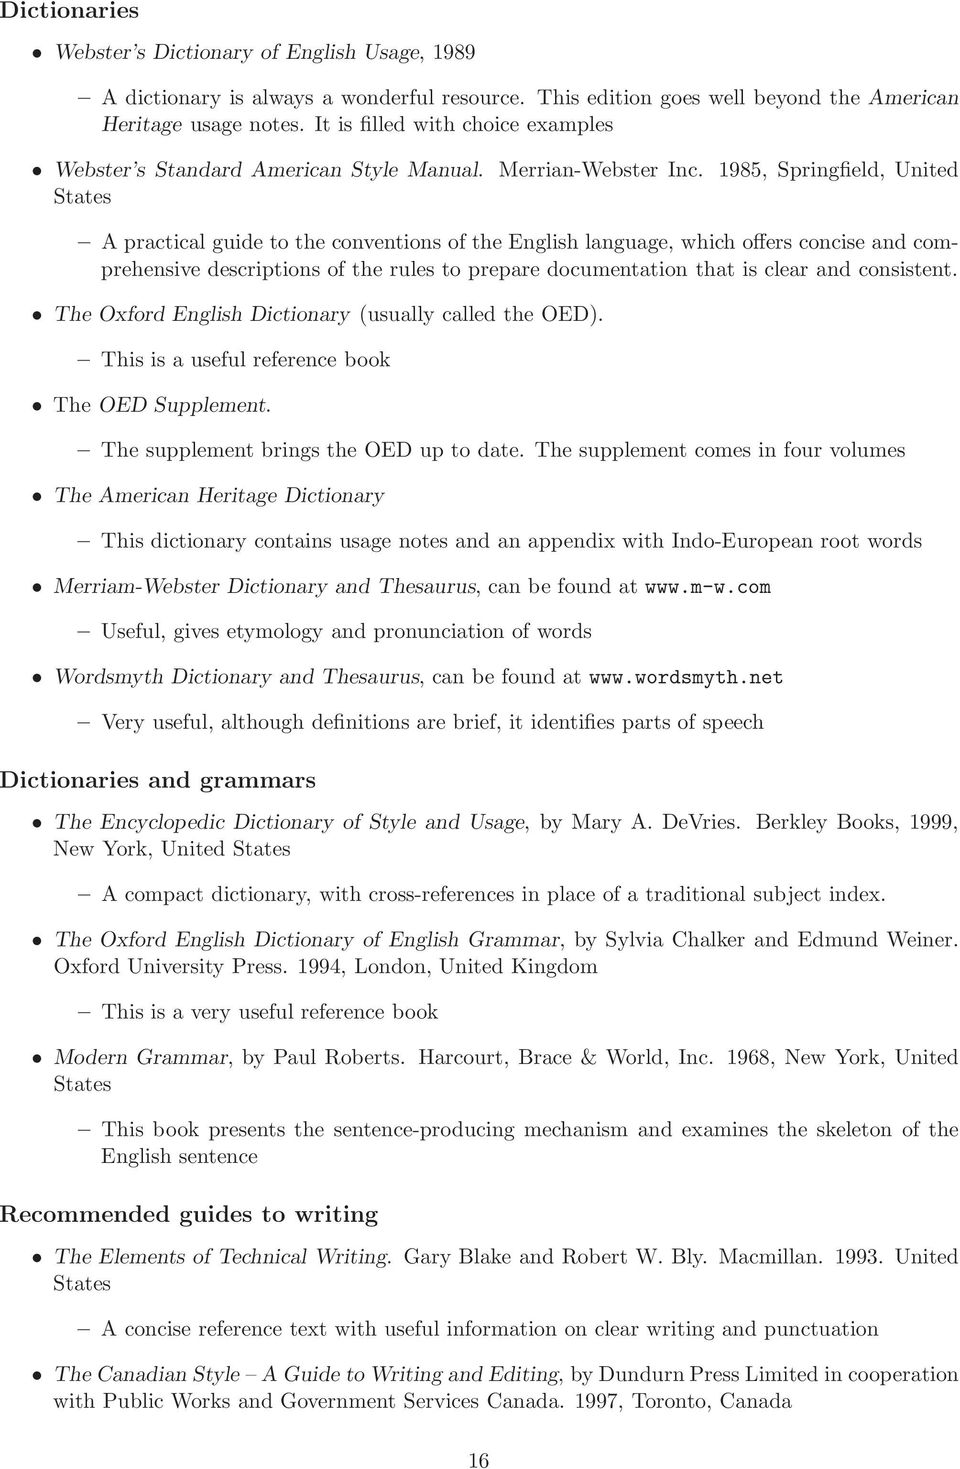 1985, Springfield, United States A practical guide to the conventions of the English language, which offers concise and comprehensive descriptions of the rules to prepare documentation that is clear